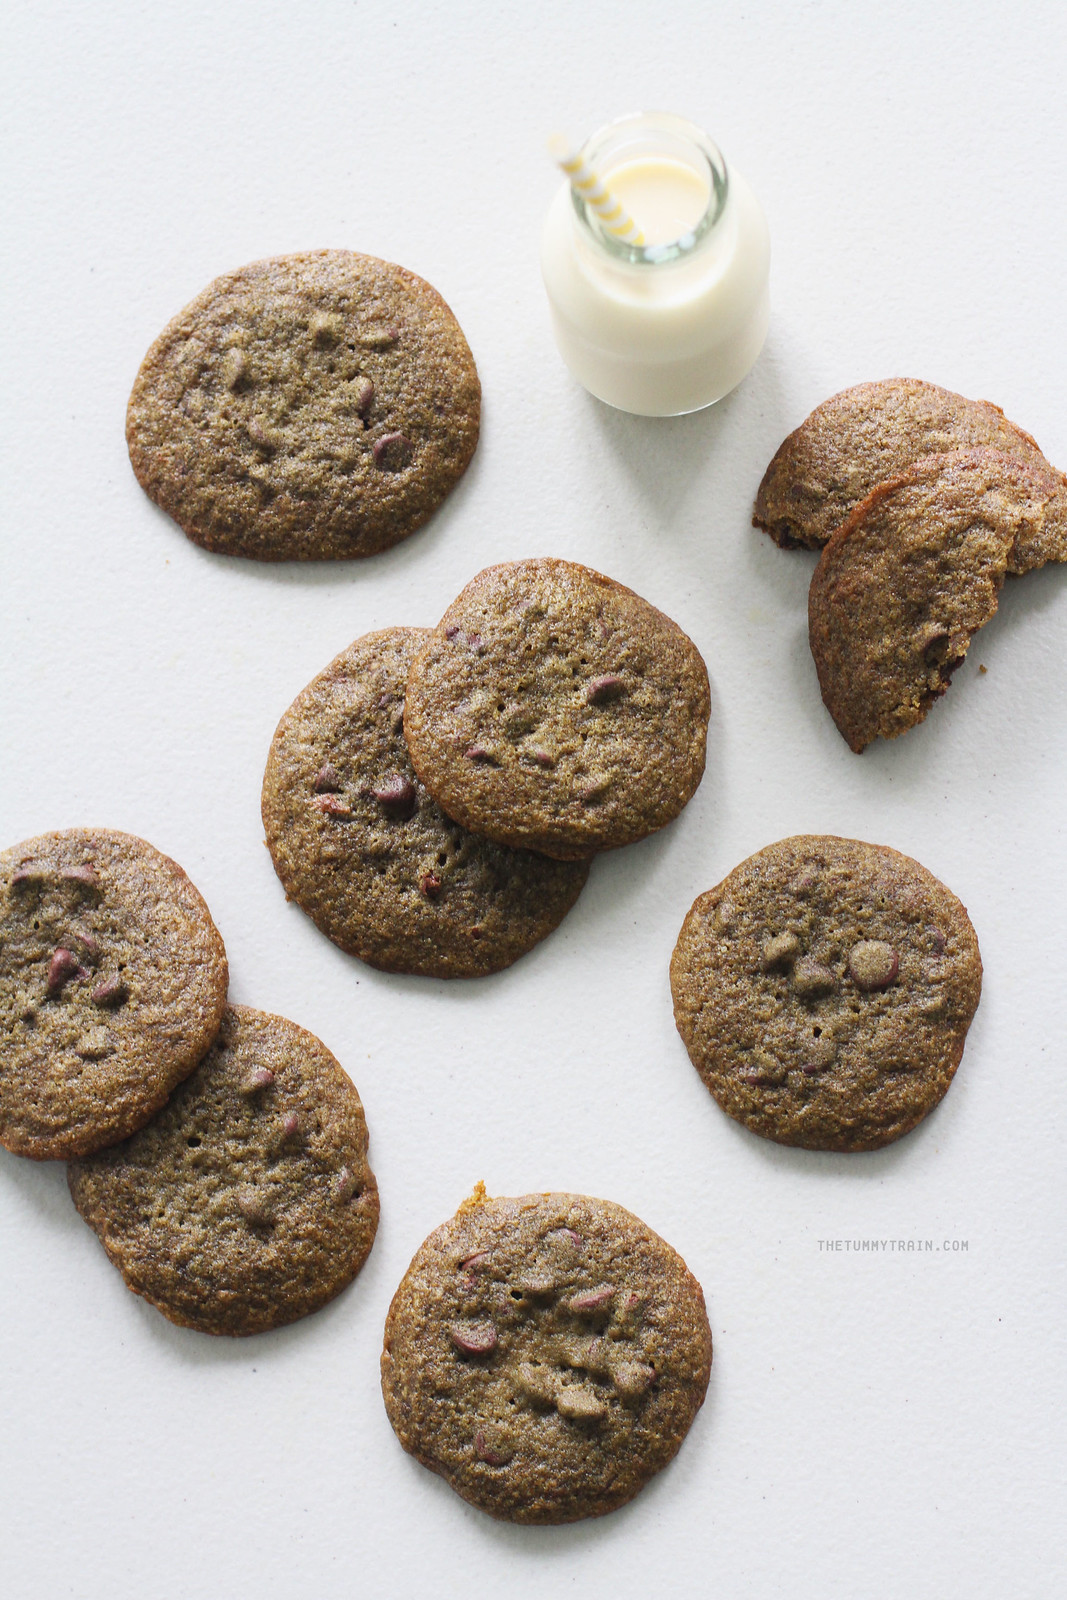 26651882202 466e89ee84 h - Let's make Matcha Chocolate Chip Cookies for a change!